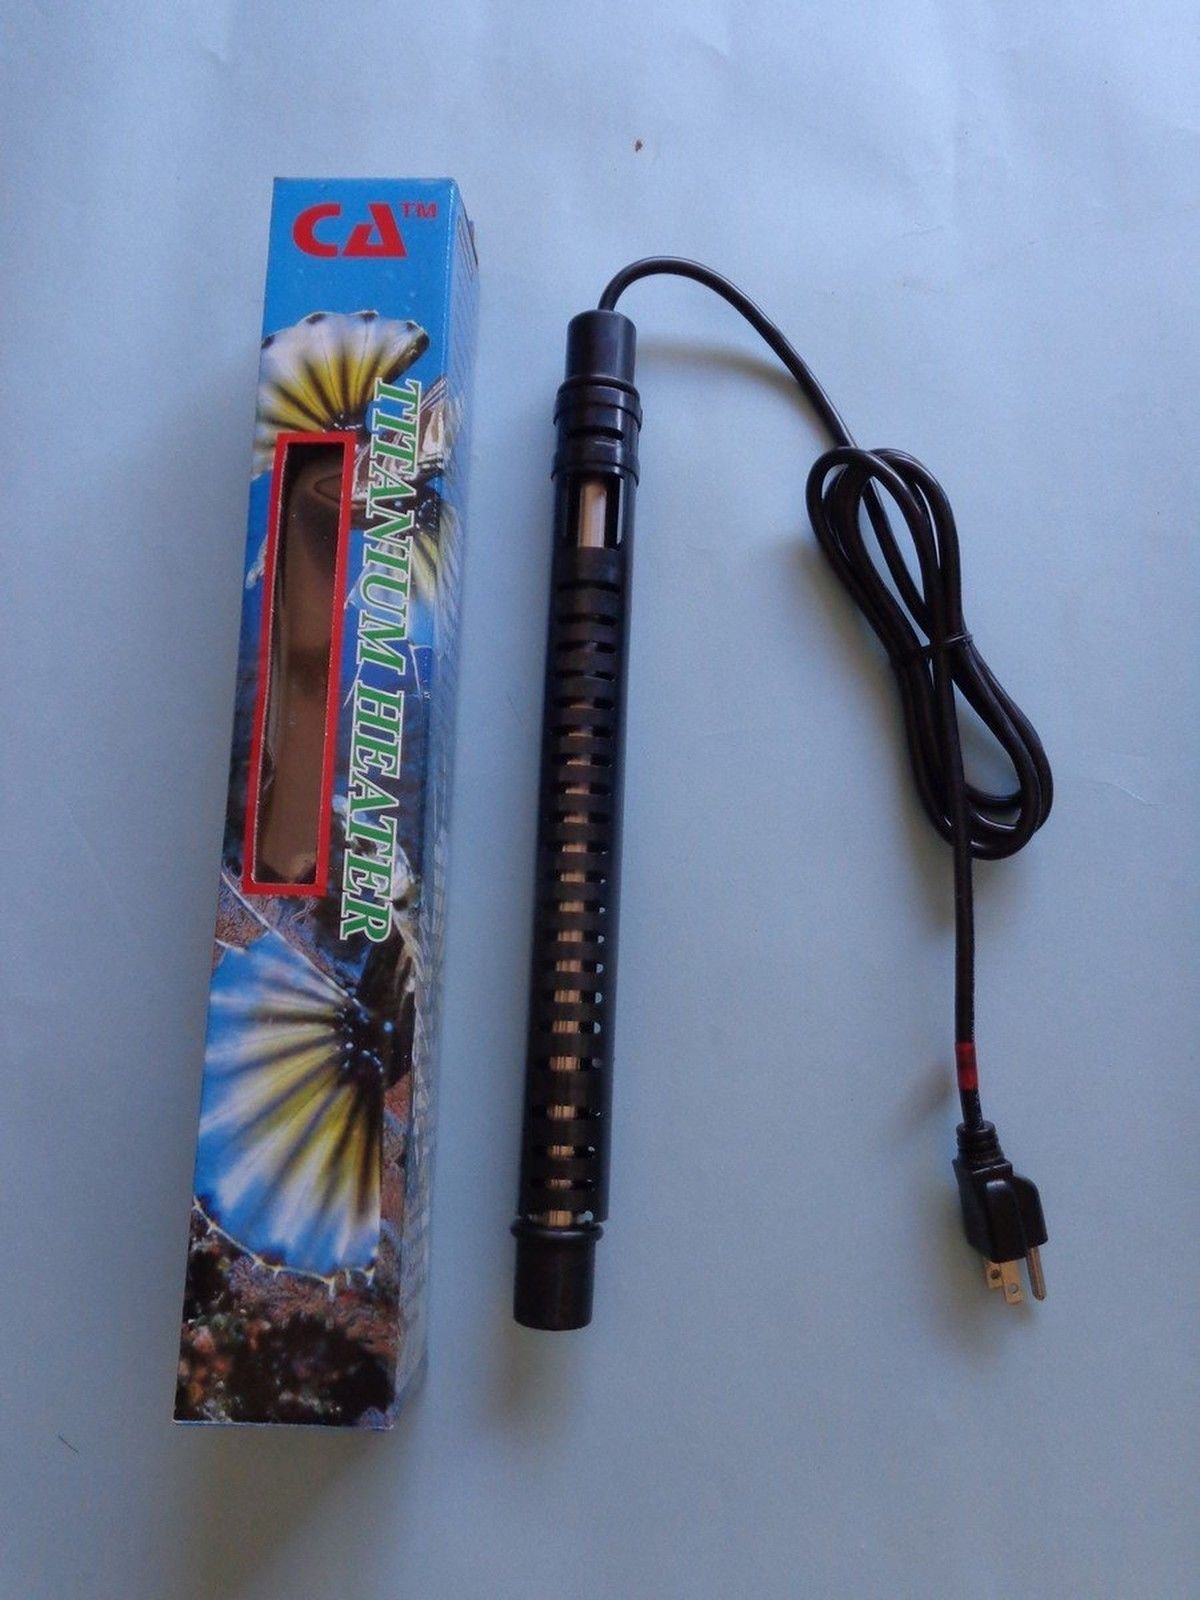 Catalina 800 Watt Titanium Aquarium Heater by Catalina